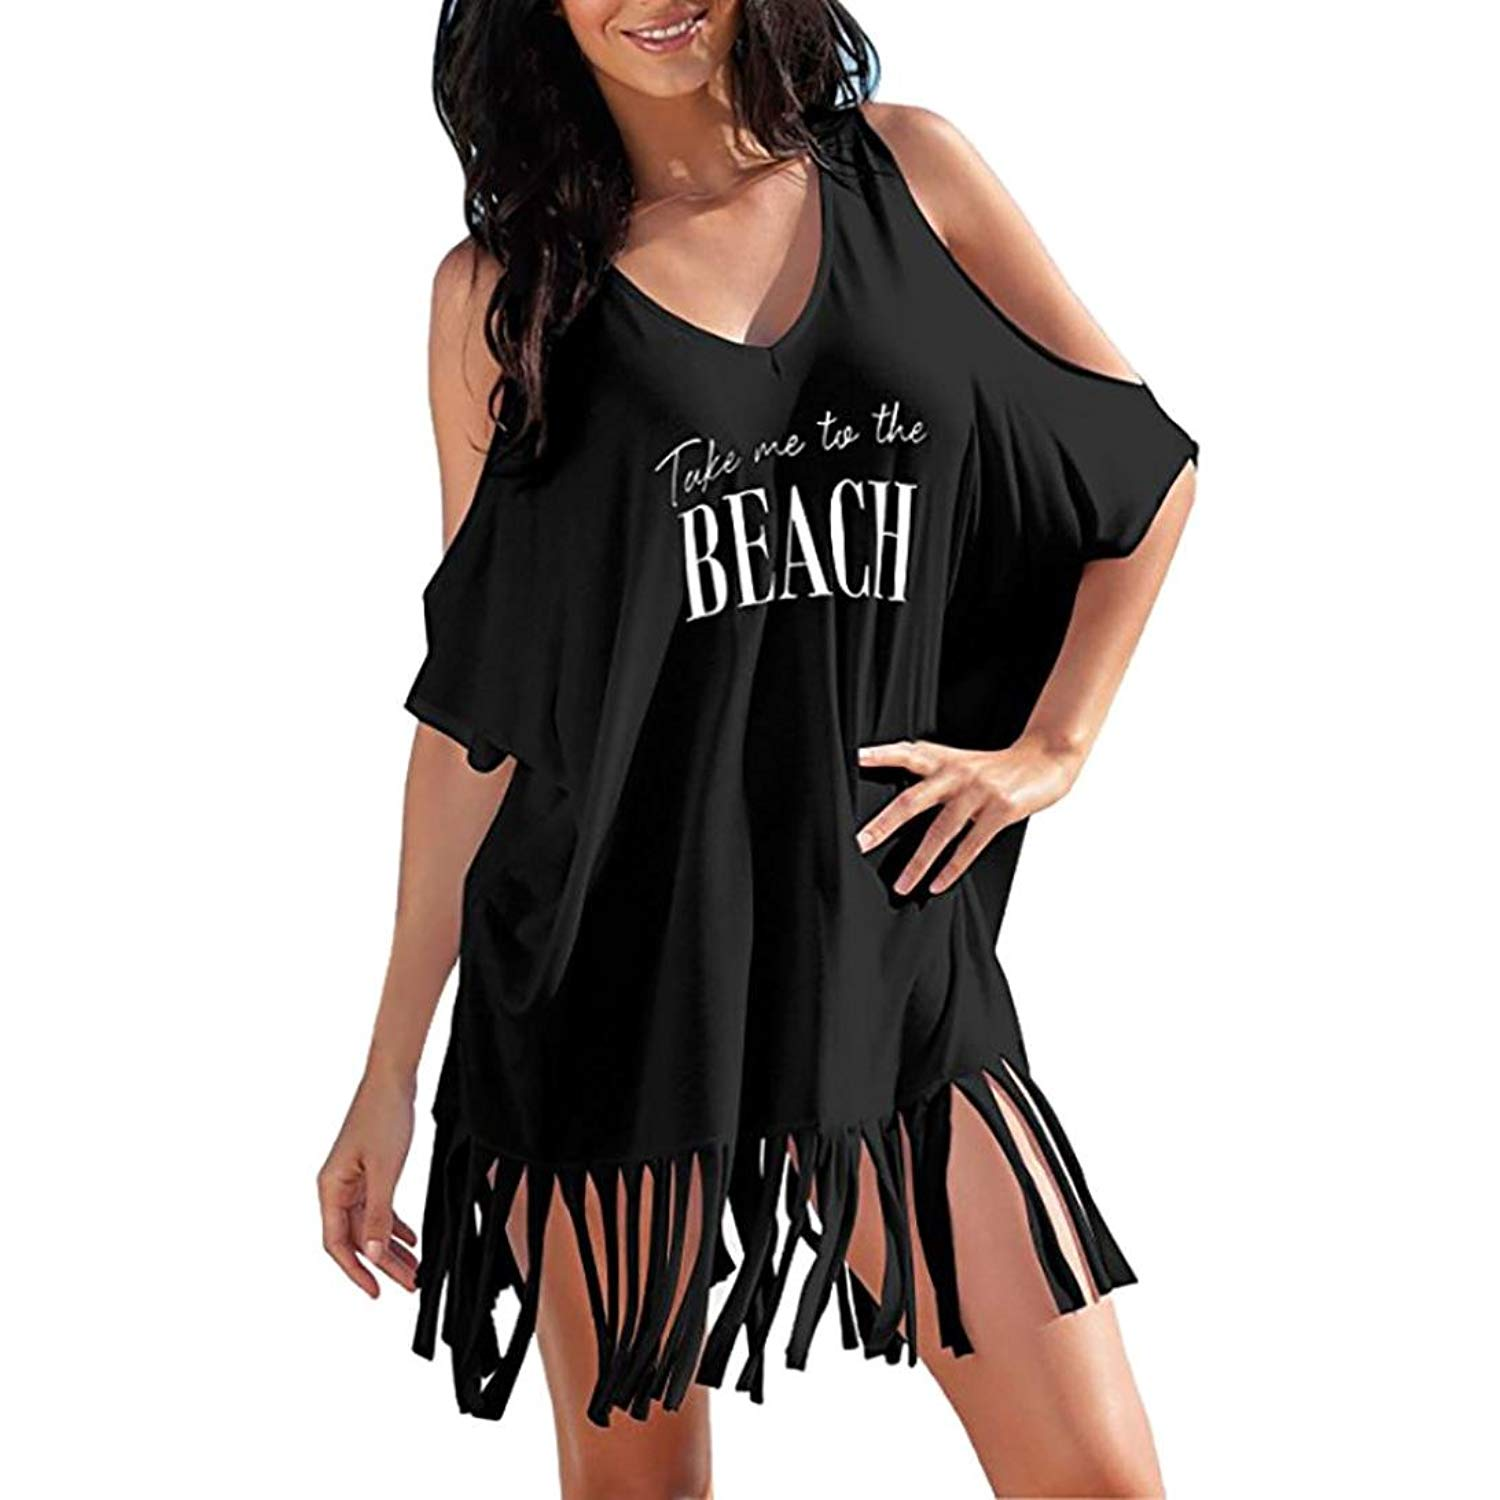 b41b38f2ed Get Quotations · GINELO Womens Letters Print Baggy Swimwear Bikini Beach  Dress, Womens Letters Print Baggy Swimwear Bikini